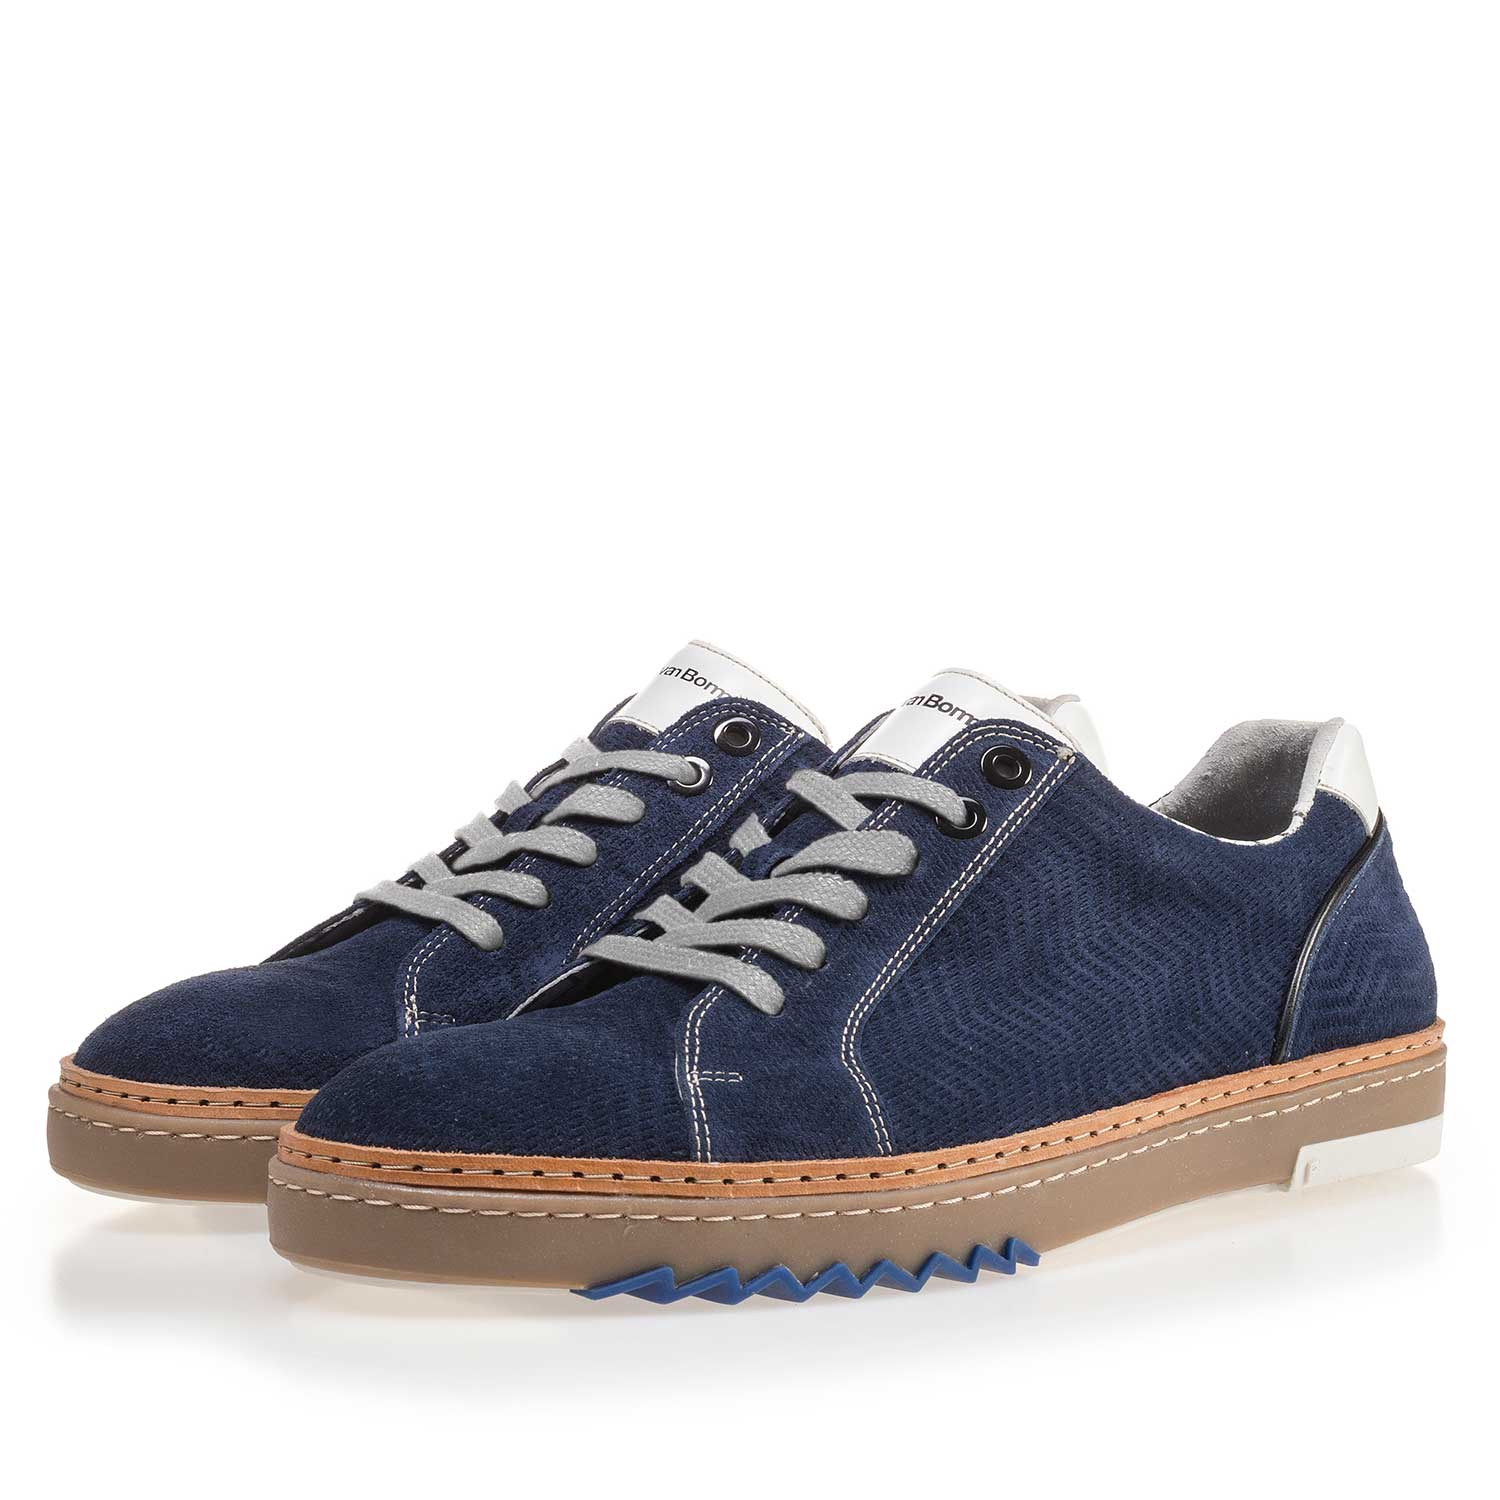 14057/04 - Blue, suede leather sneaker with pattern